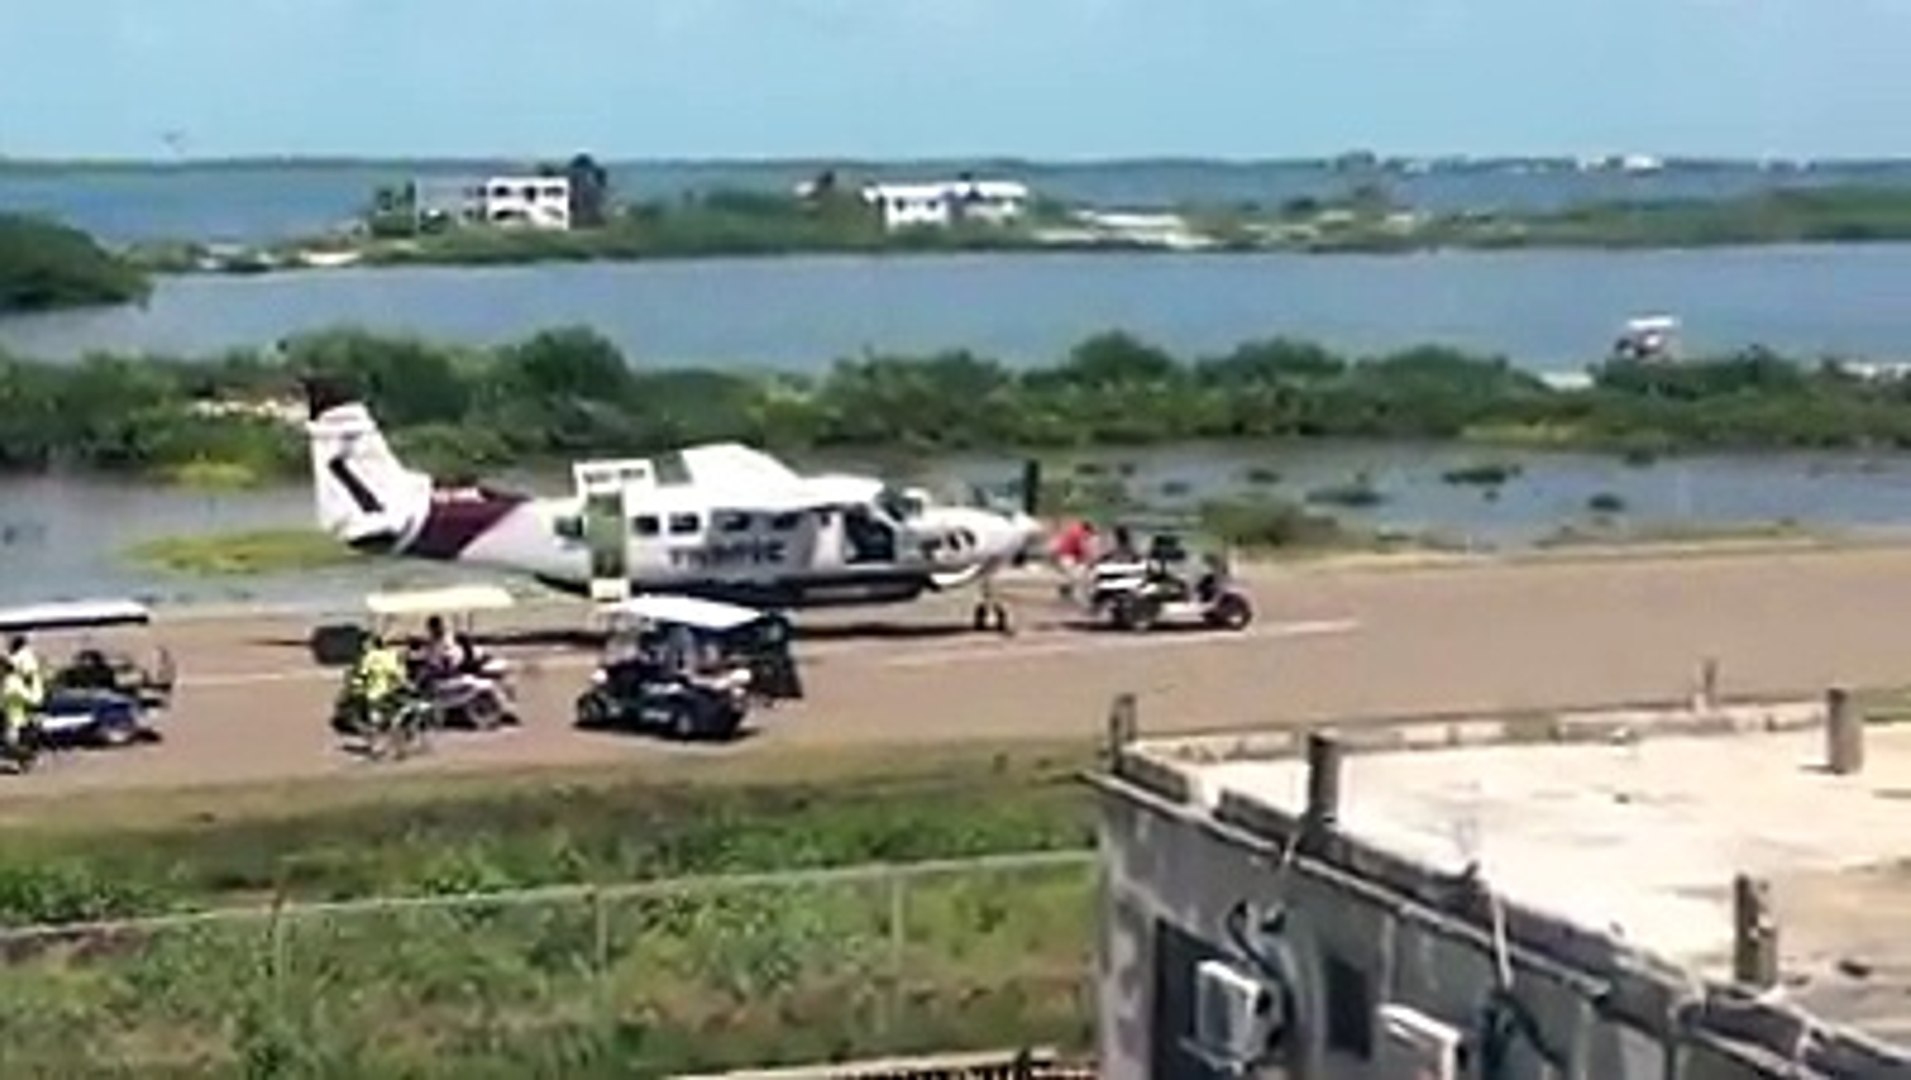 A Tropic Air Cessna Caravan aircraft ran off the runway in San Pedro Town  this morning Saturday, September 8th, after the pilot elected to abort the  flight  A